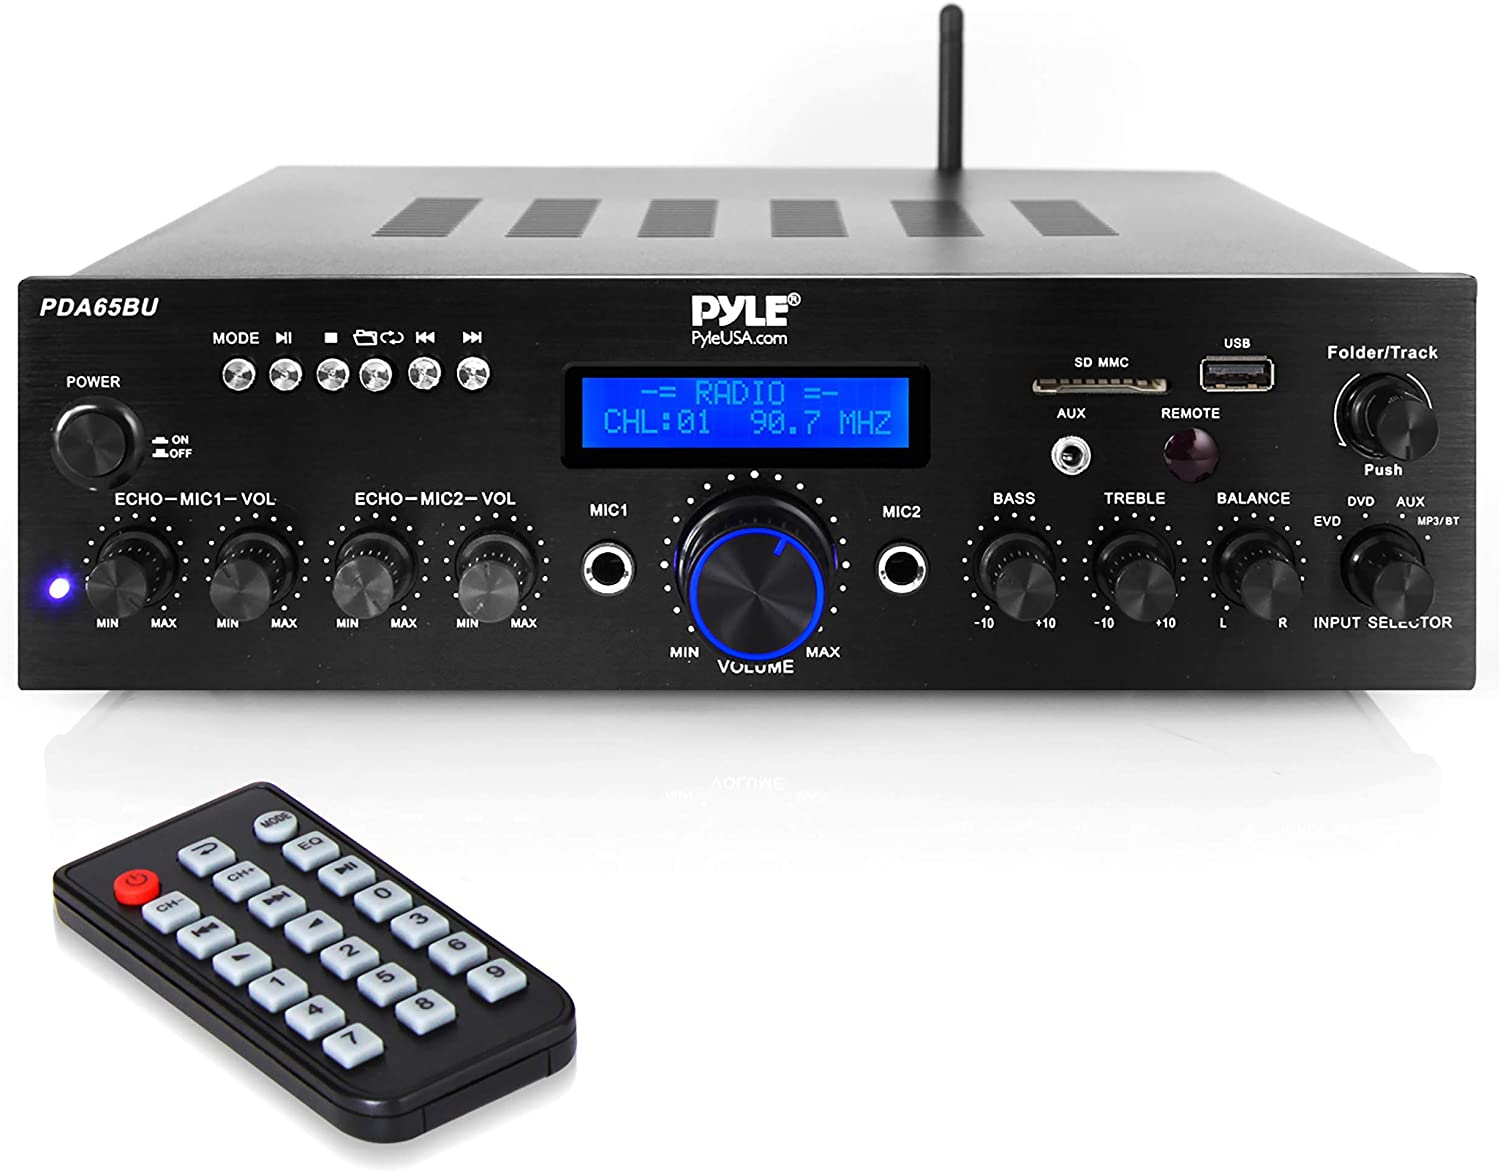 Wireless Bluetooth Power Amplifier System - 200W Dual Channel Sound Audio Stereo Receiver w/ USB, AUX, MIC IN w/ Echo, Radio - For Home Theater Entertainment via RCA, Studio Use - Pyle PDA65BU,Black